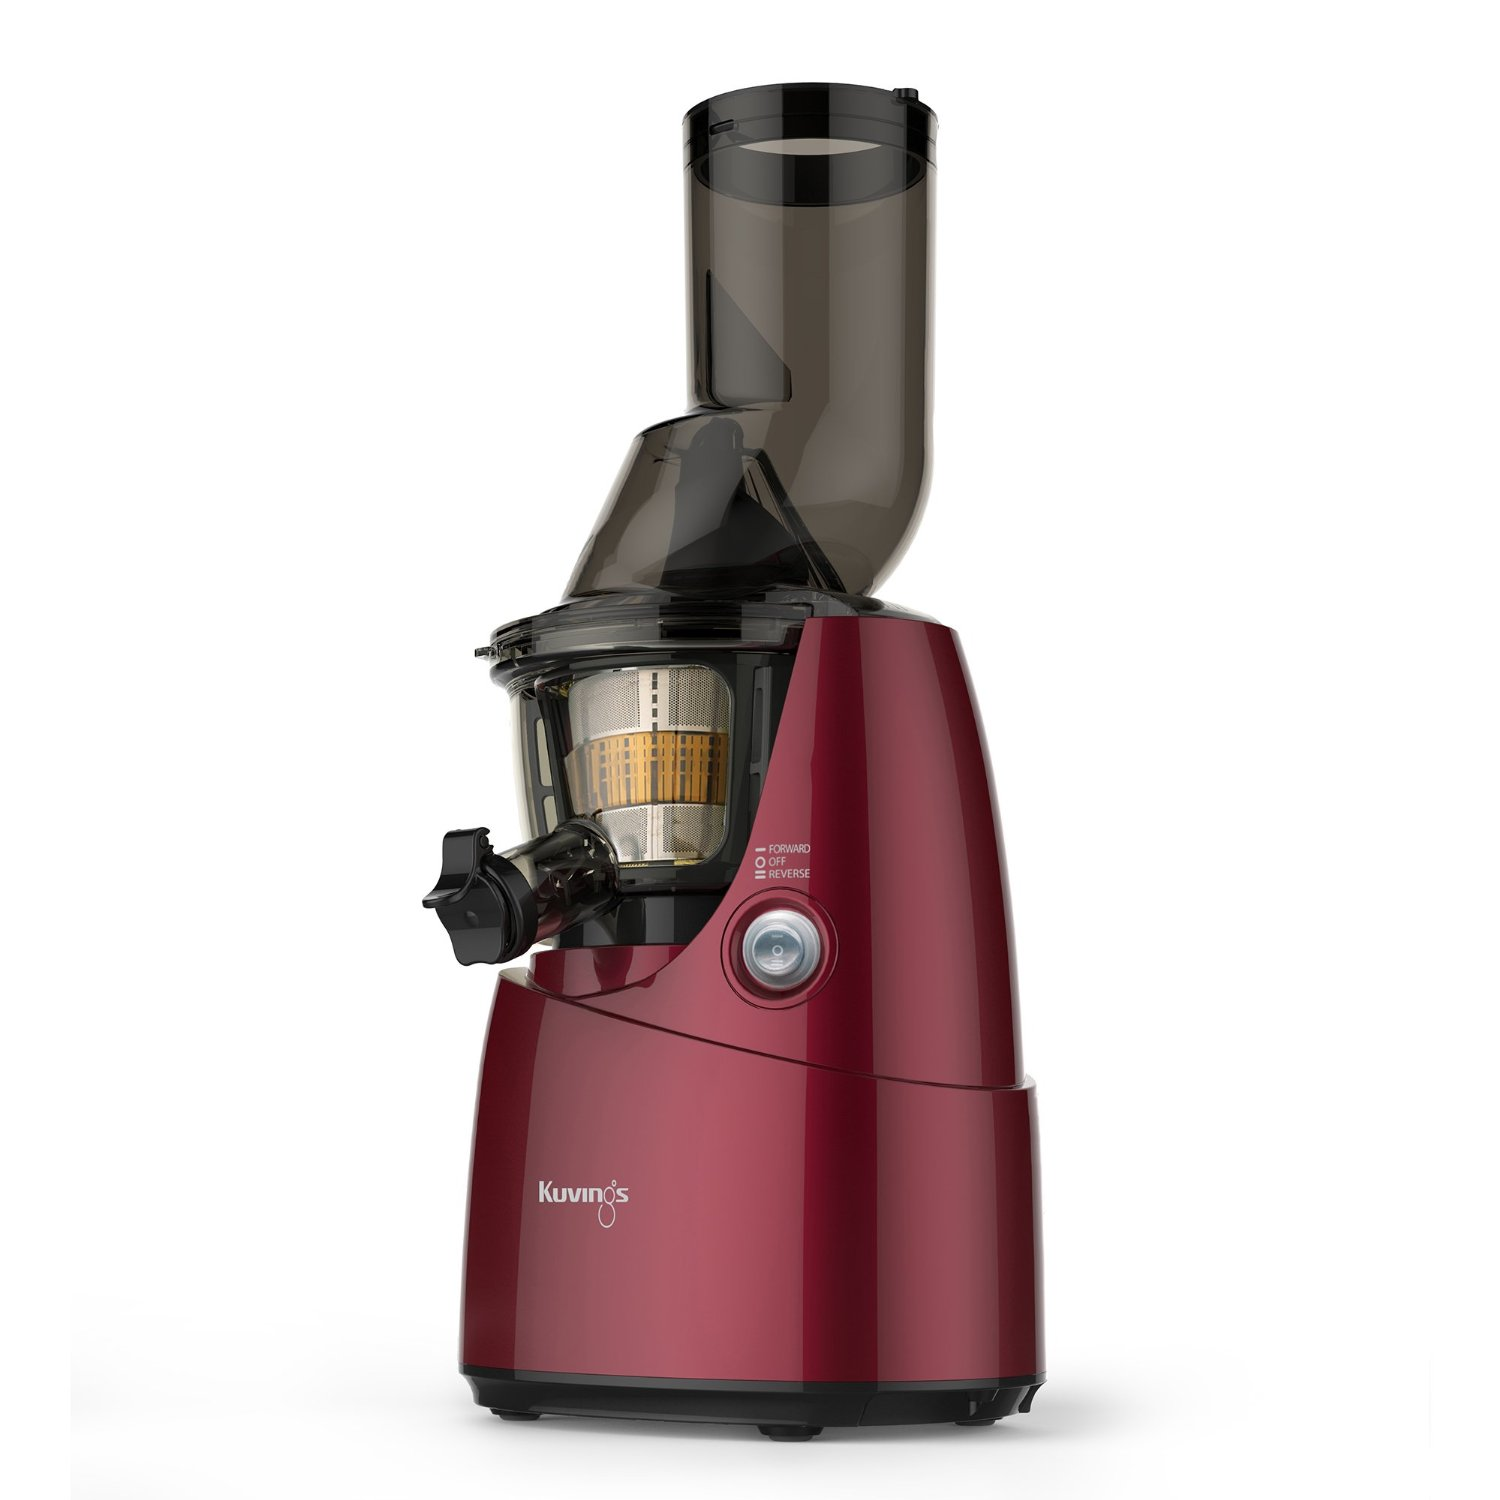 Kuvings Whole Slow Juicer B6000 Upright Vertical Masticating Juicer : Kuvings B6000 Upright Slow Silent Masticating Juicer Review